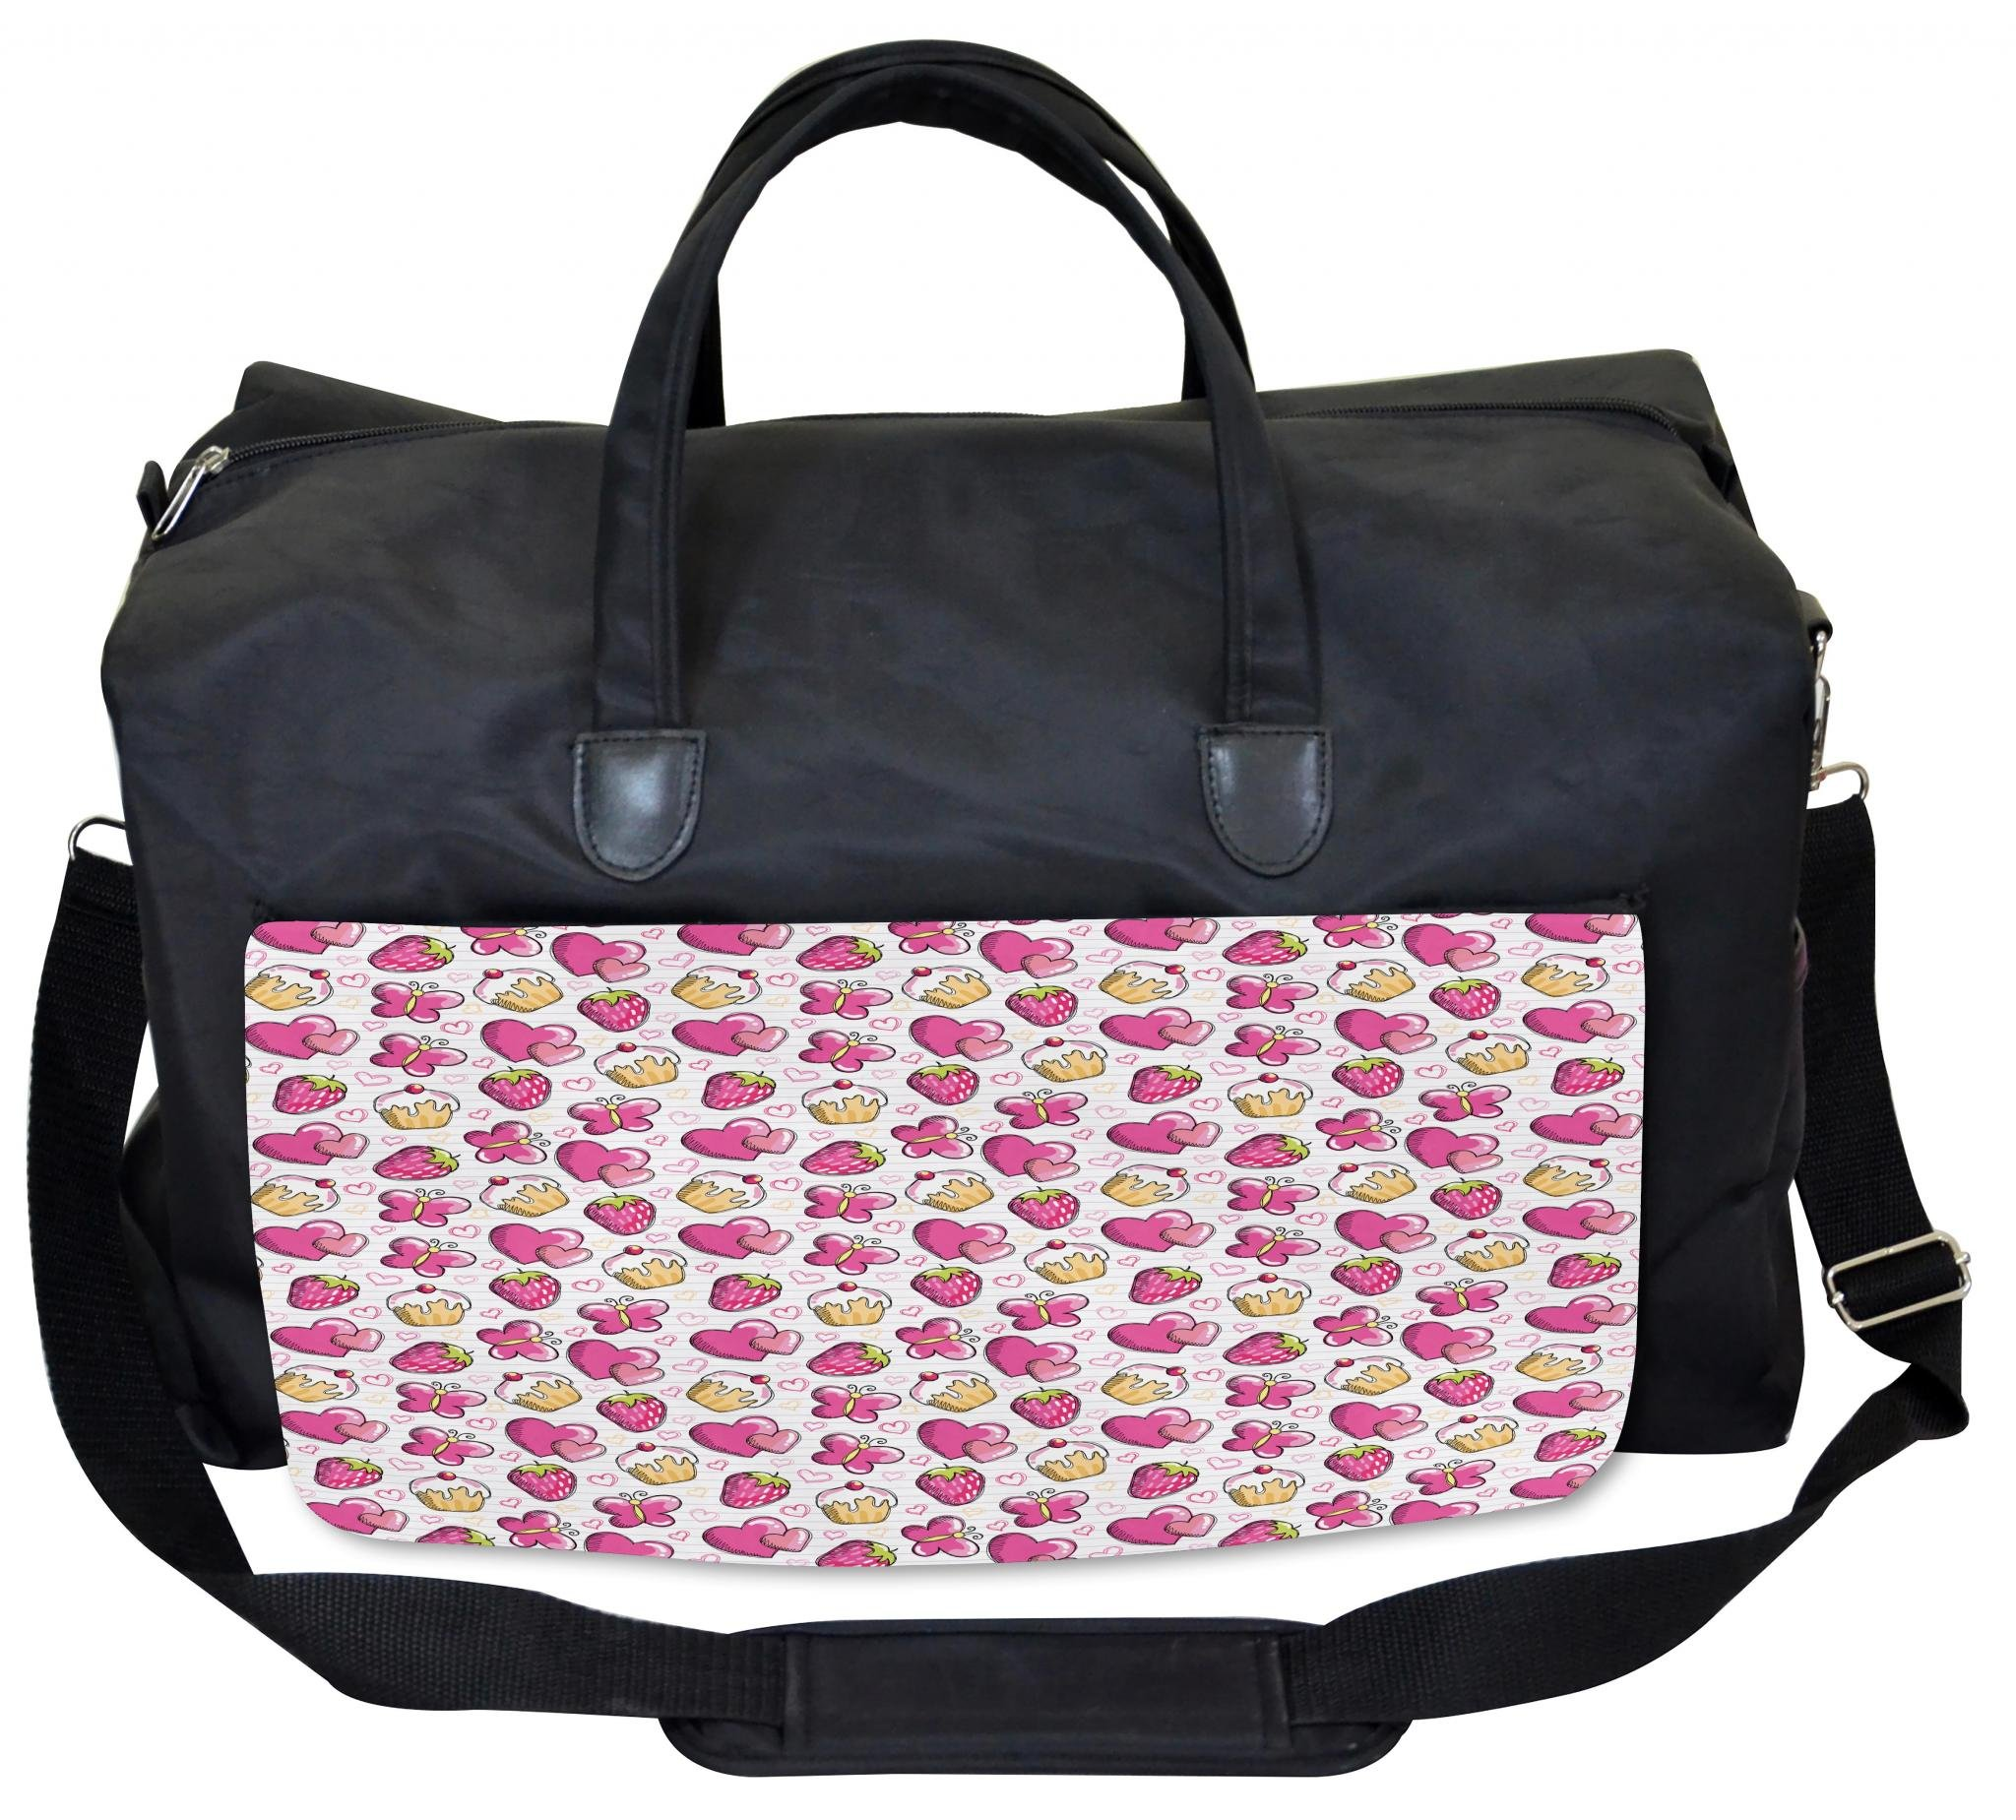 Lunarable Hearts Gym Bag, Yummy Cupcake Strawberry, Large Weekender Carry-on by Lunarable